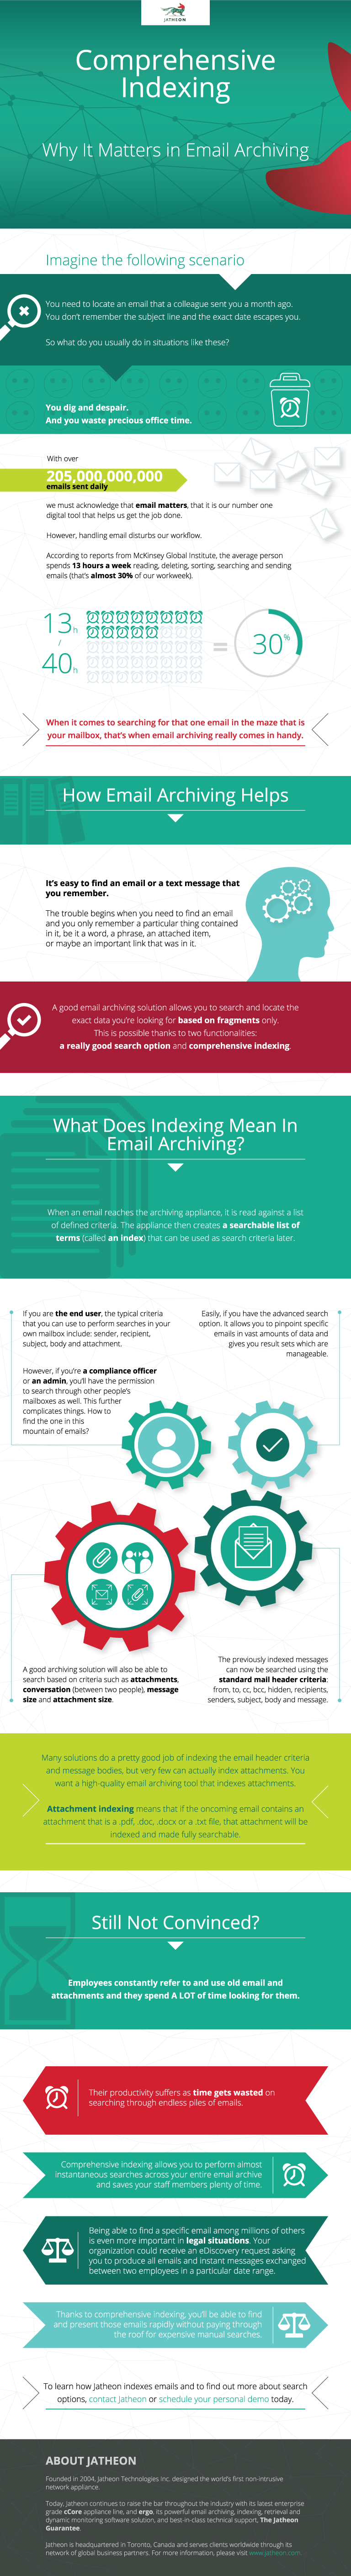 email archive indexing infographic